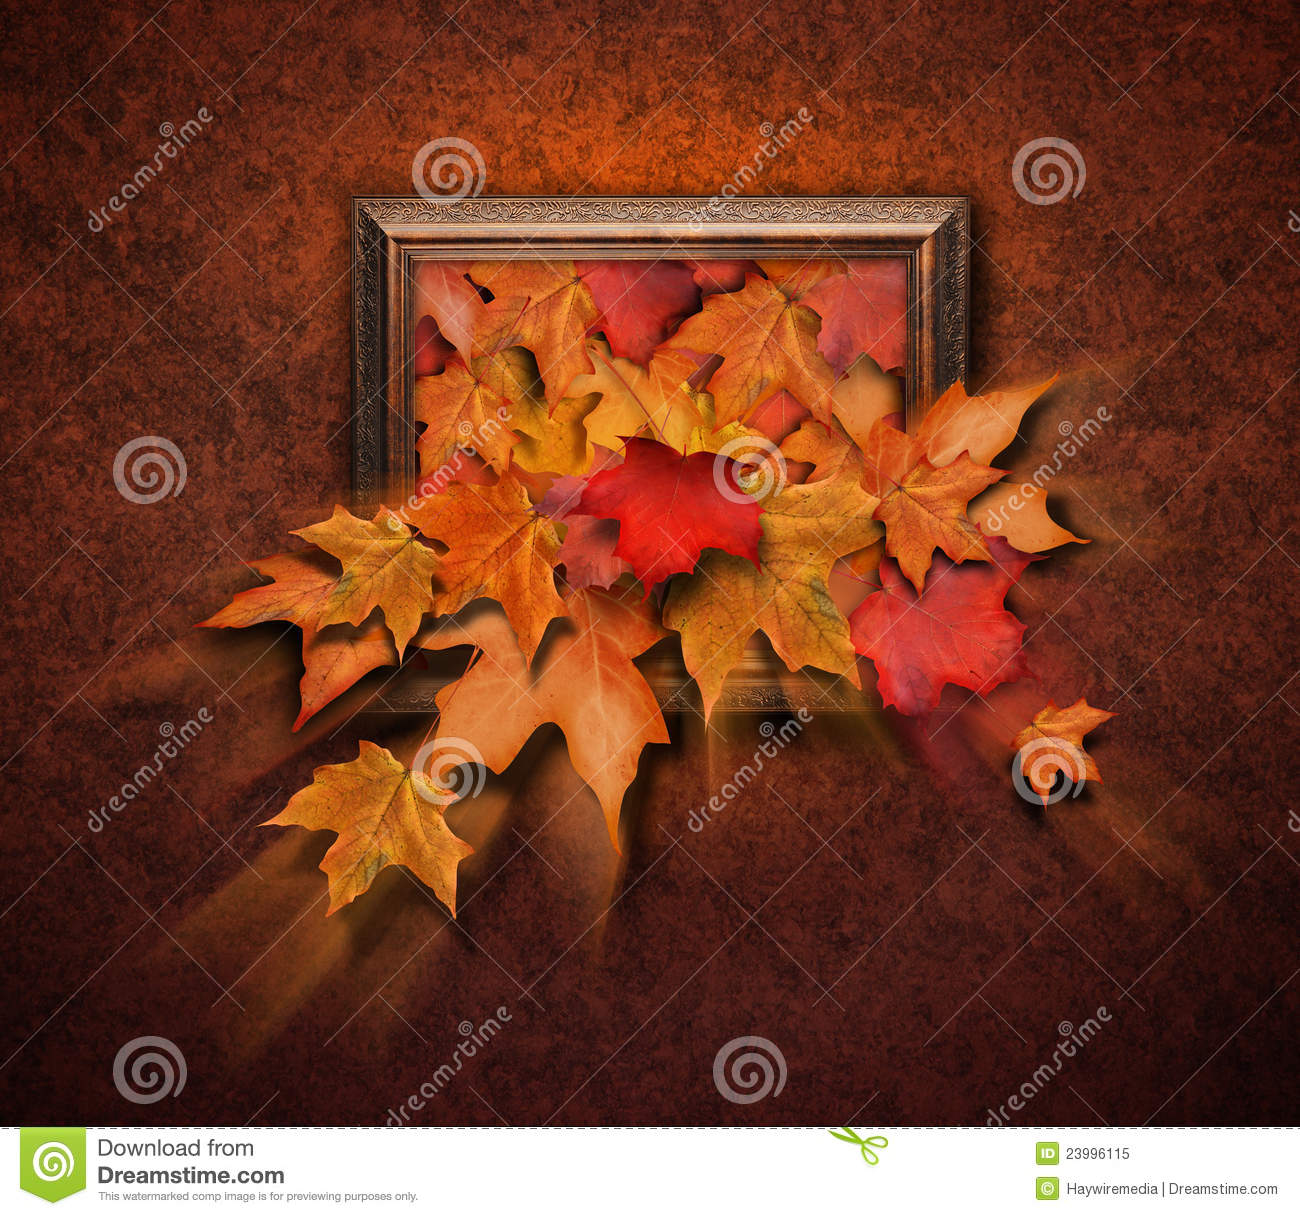 Fall Leaves Coming Out Of Antique Frame Stock Image